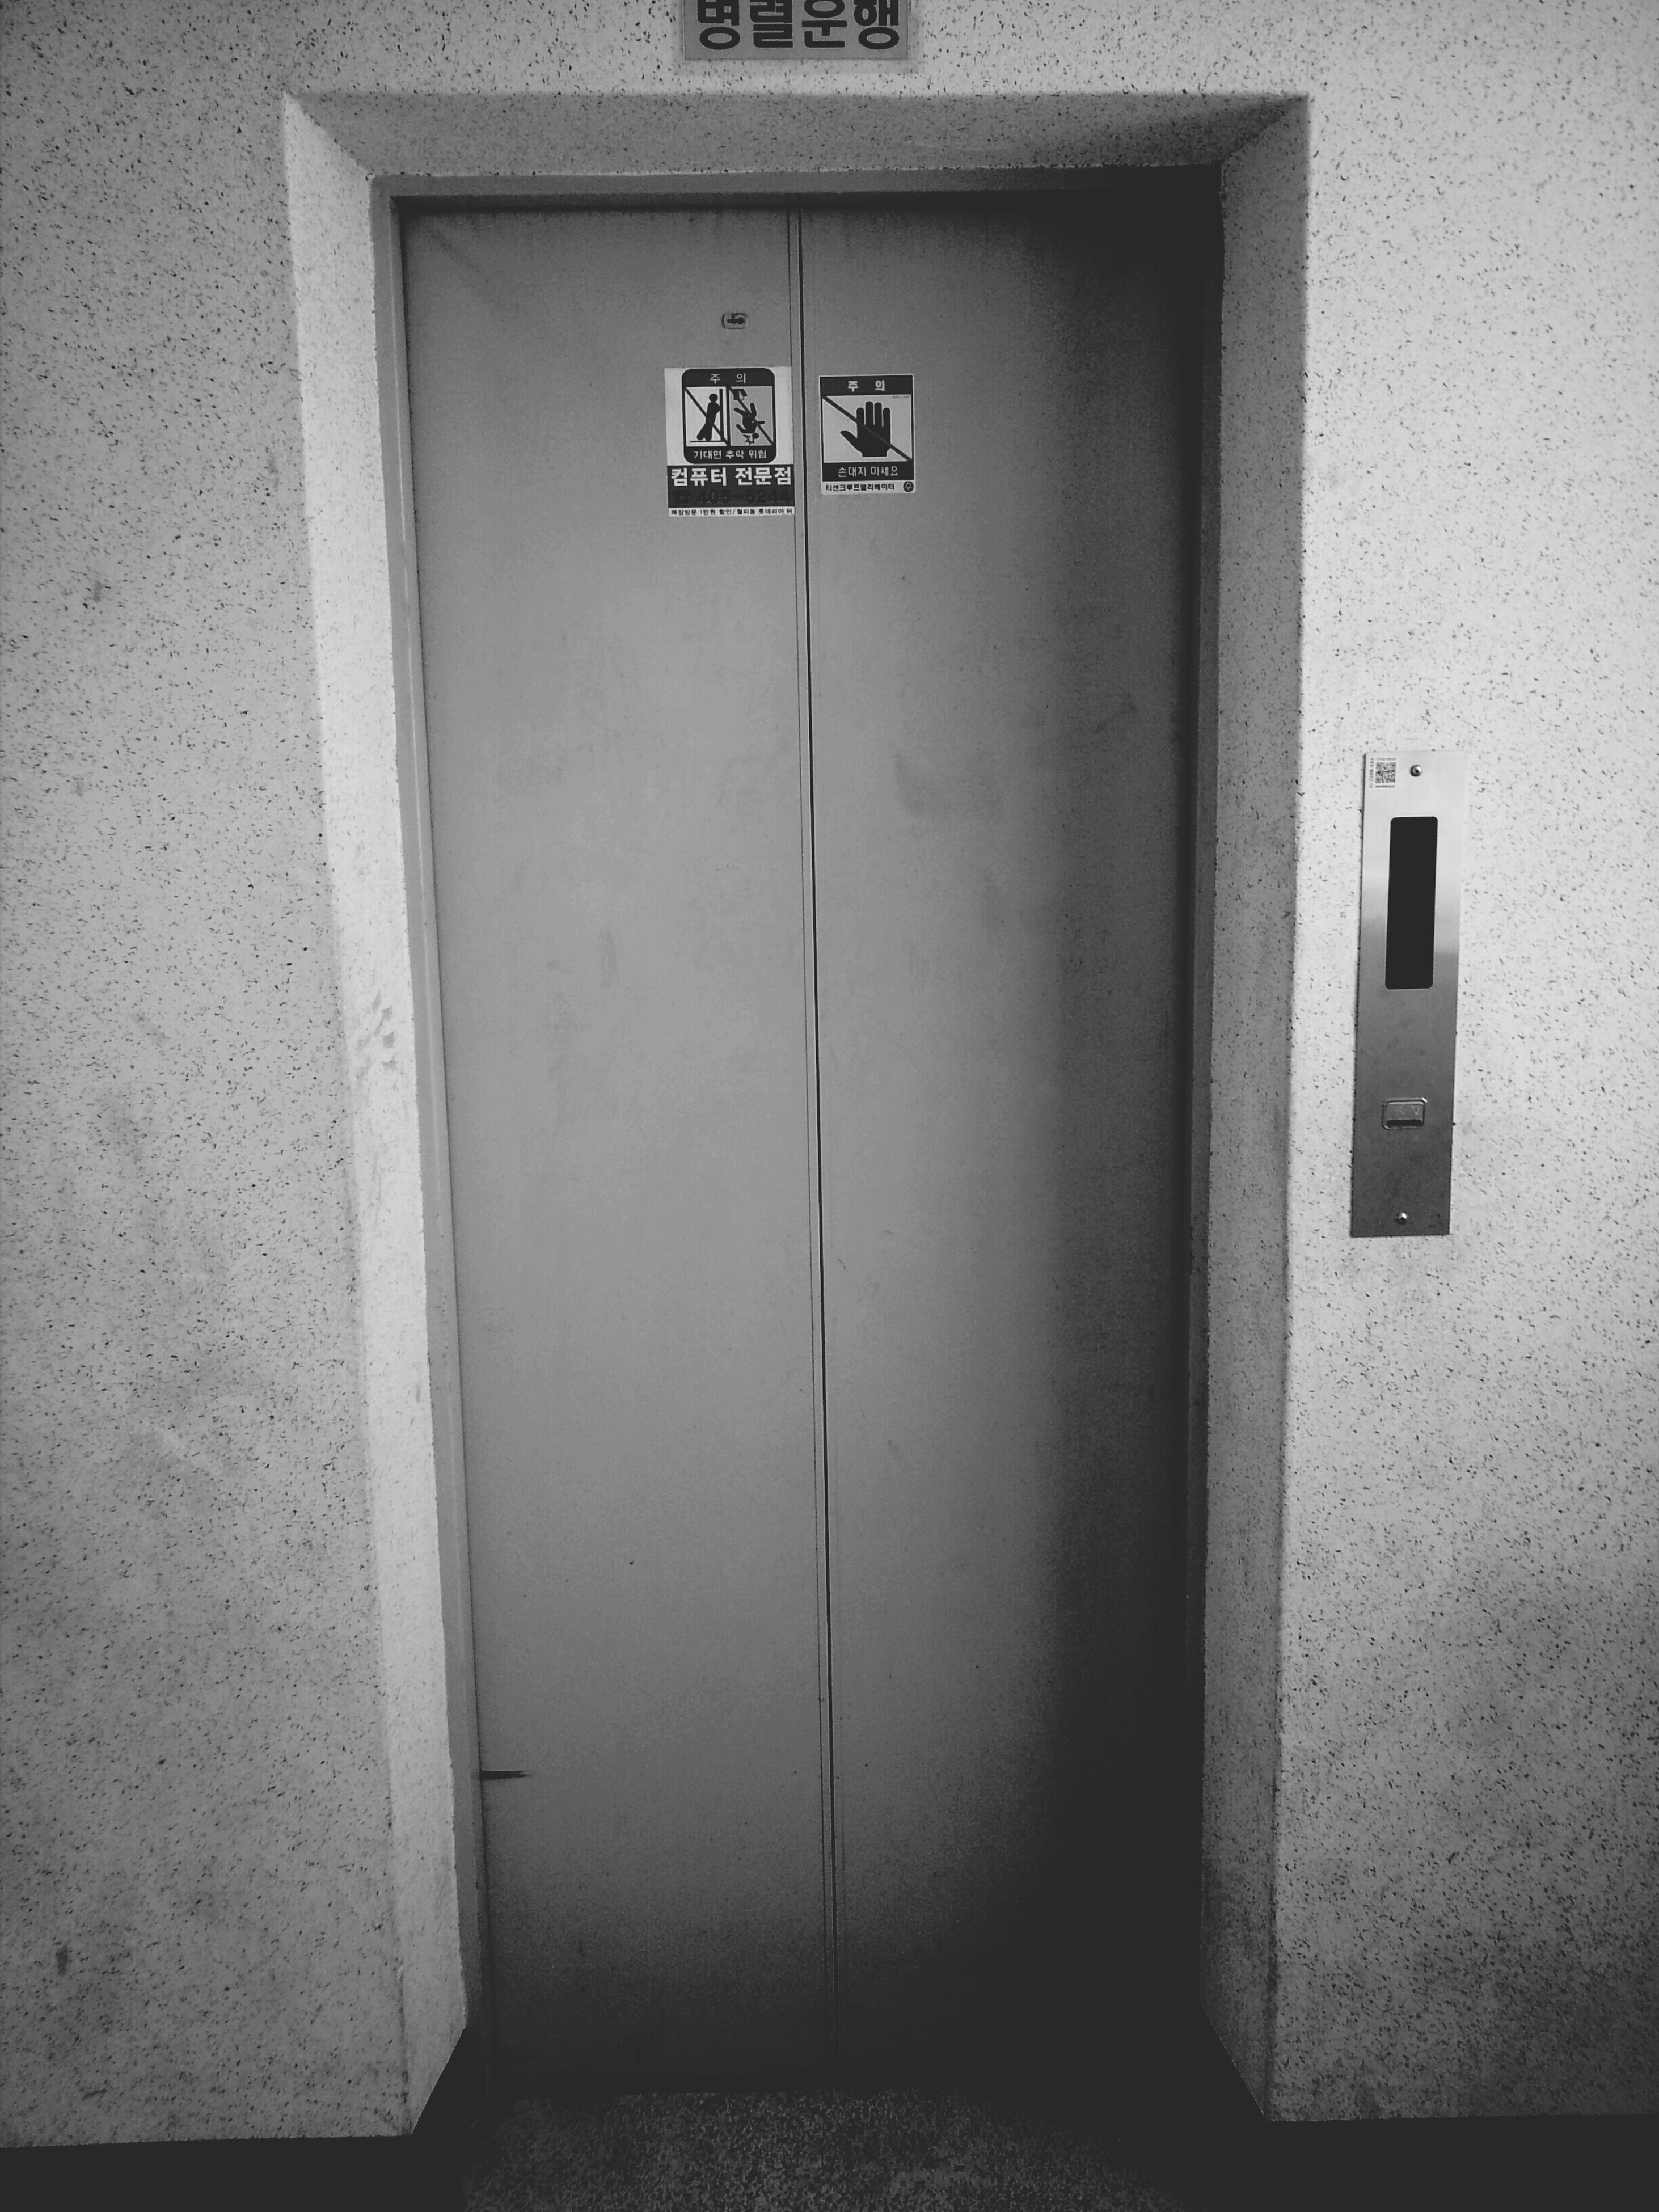 wall - building feature, door, architecture, built structure, communication, wall, closed, text, indoors, western script, building exterior, no people, number, safety, security, day, entrance, protection, house, technology